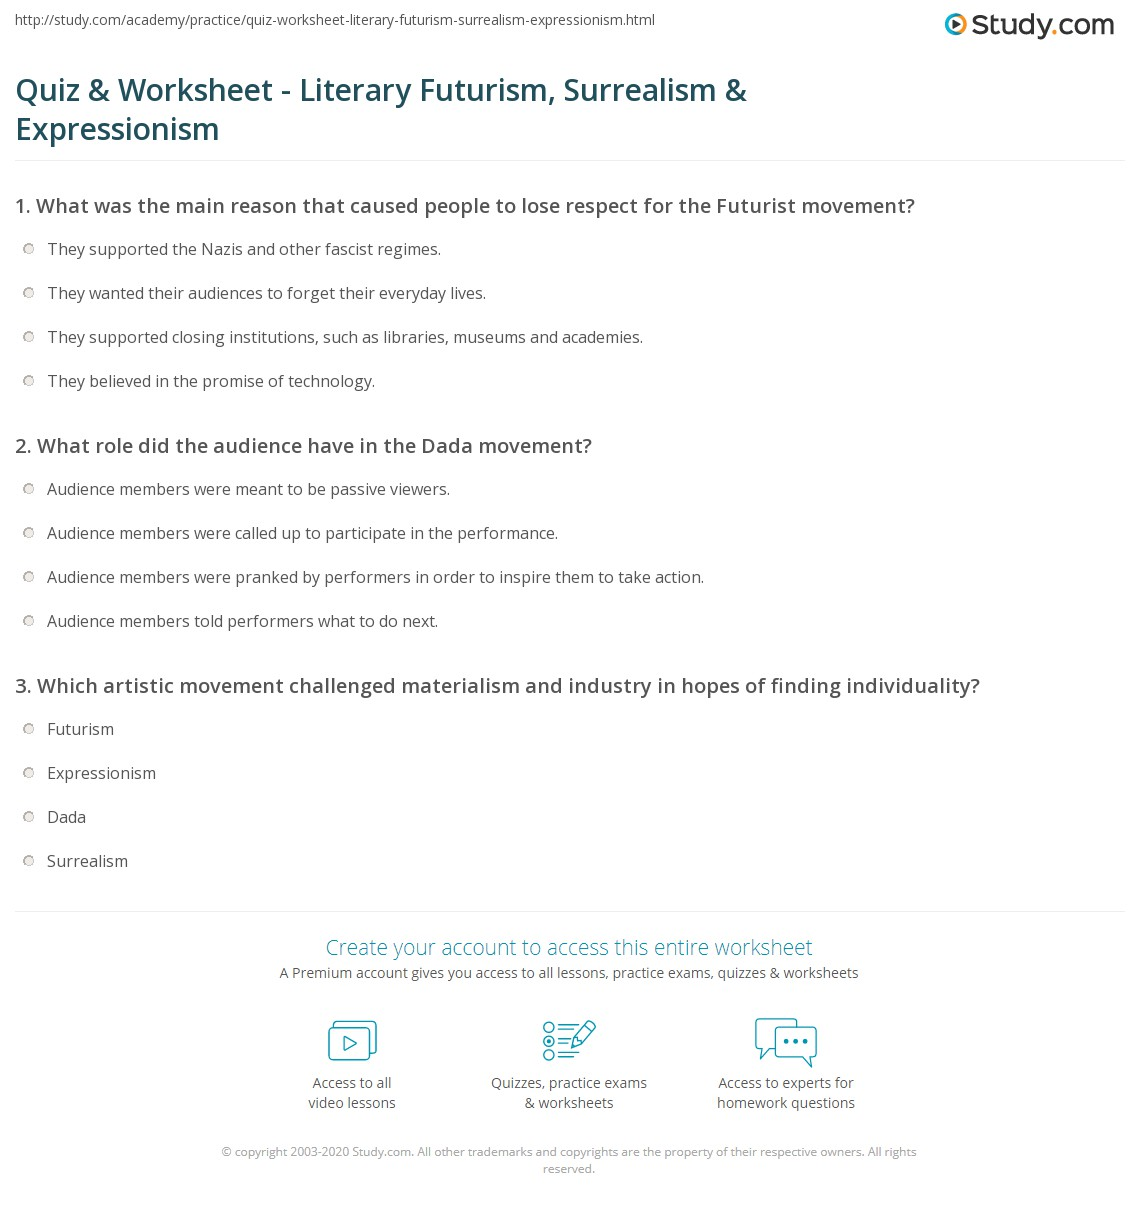 futurism essay what is life essay quiz worksheet literary futurism  quiz worksheet literary futurism surrealism expressionism print futurism dada surrealism expressionism worksheet